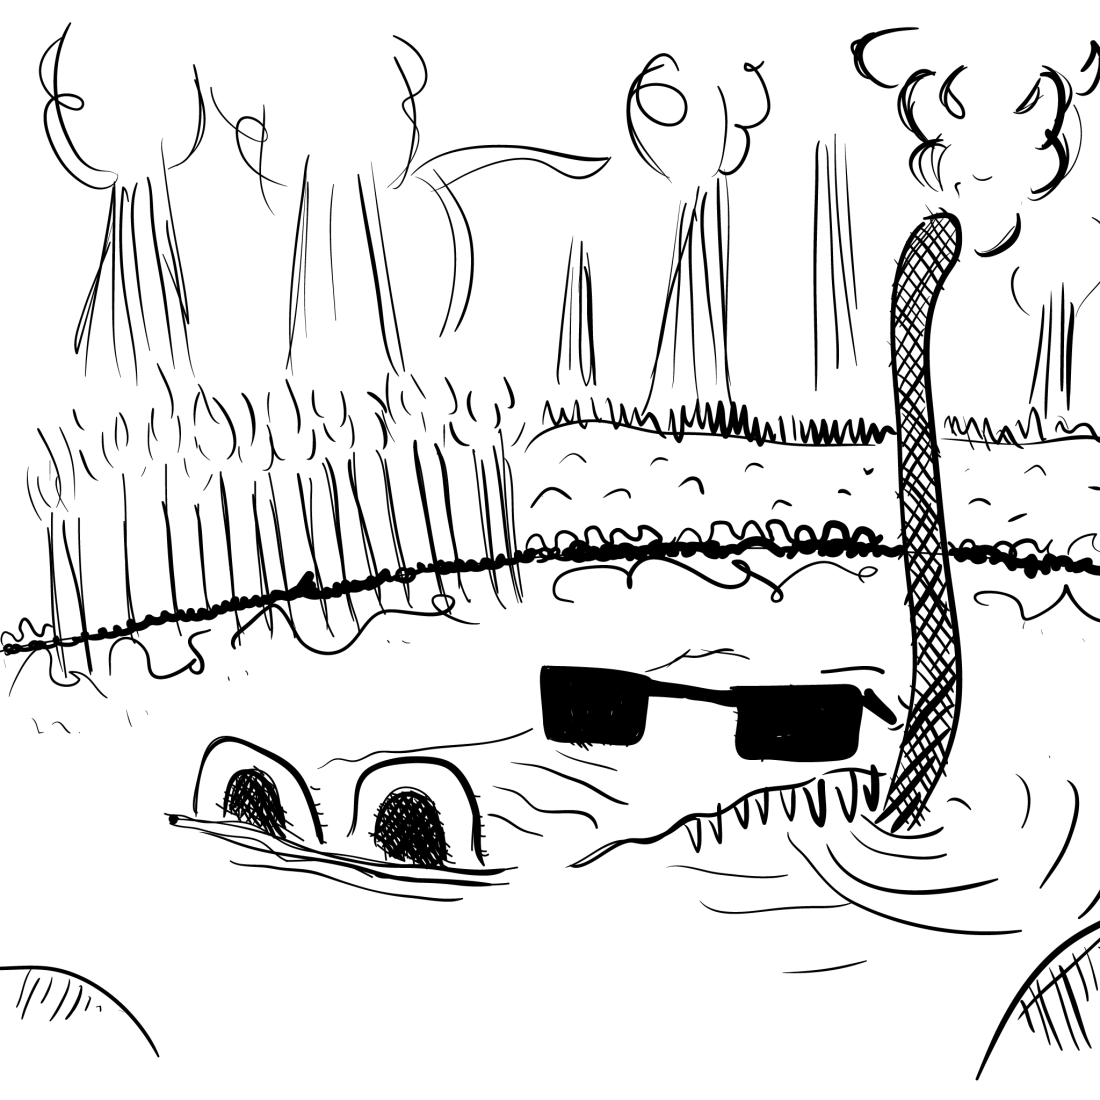 sketch: the head of a gator wearing shades, using a scuba stick (read: snorkel) to exhale a smoky substance -- presumably marijuana. also the name of the sketch is a reference to Brownsville Station's 1973 hit song, obviously. the image is crudely rendered in monotone